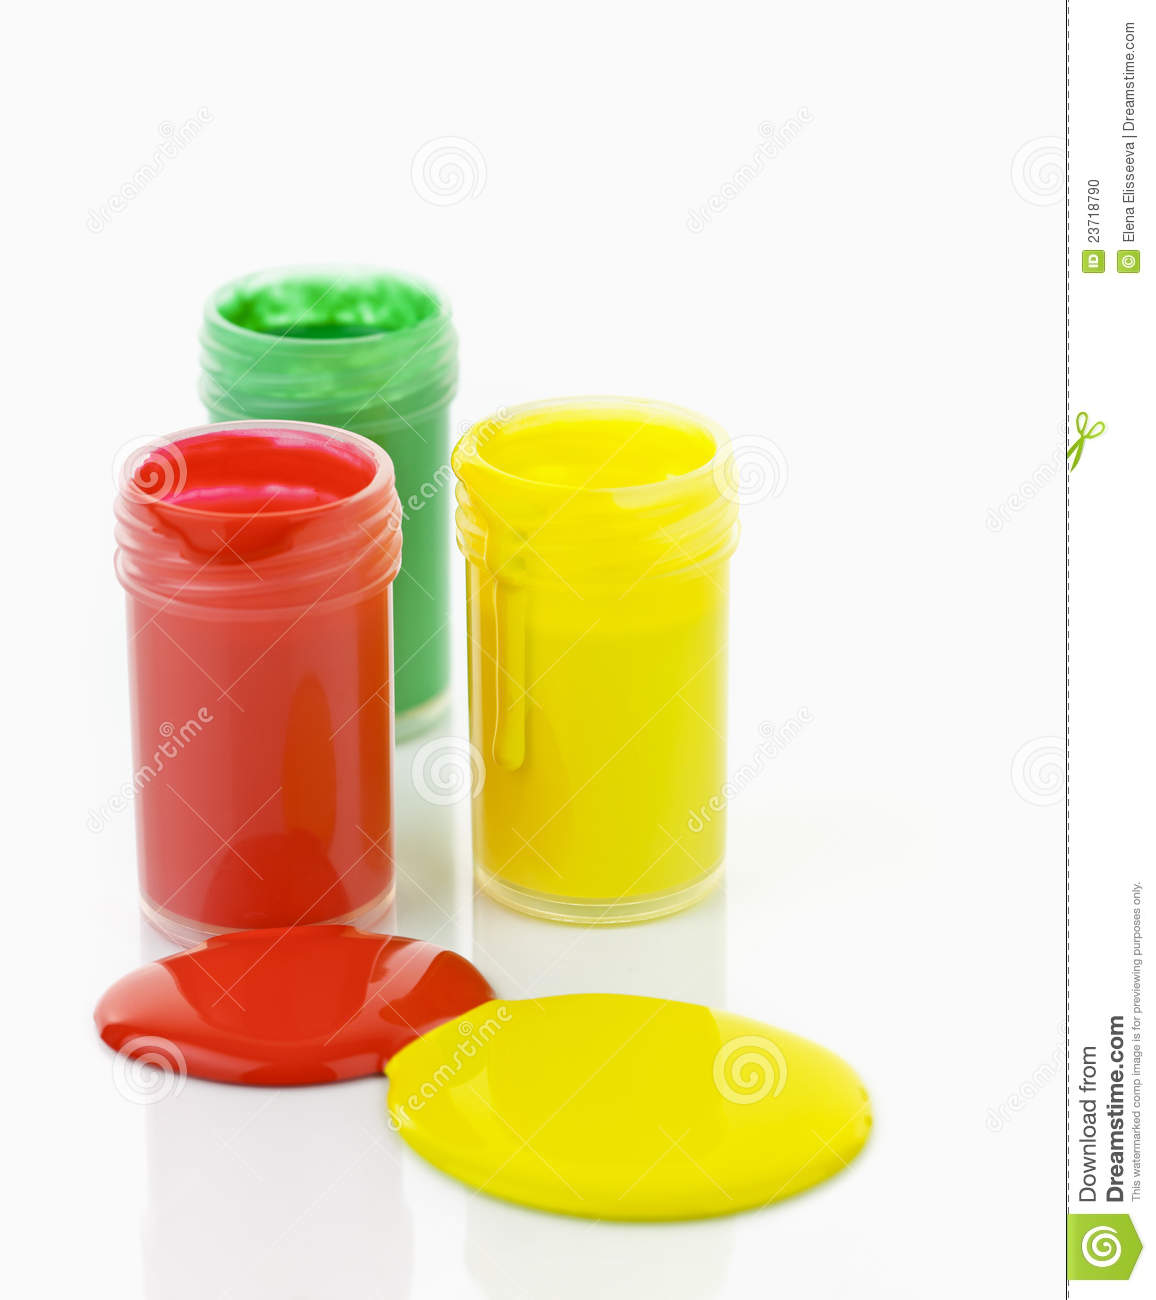 Different Colors Of Paint: Paint Of Different Colors Spilled Stock Photo